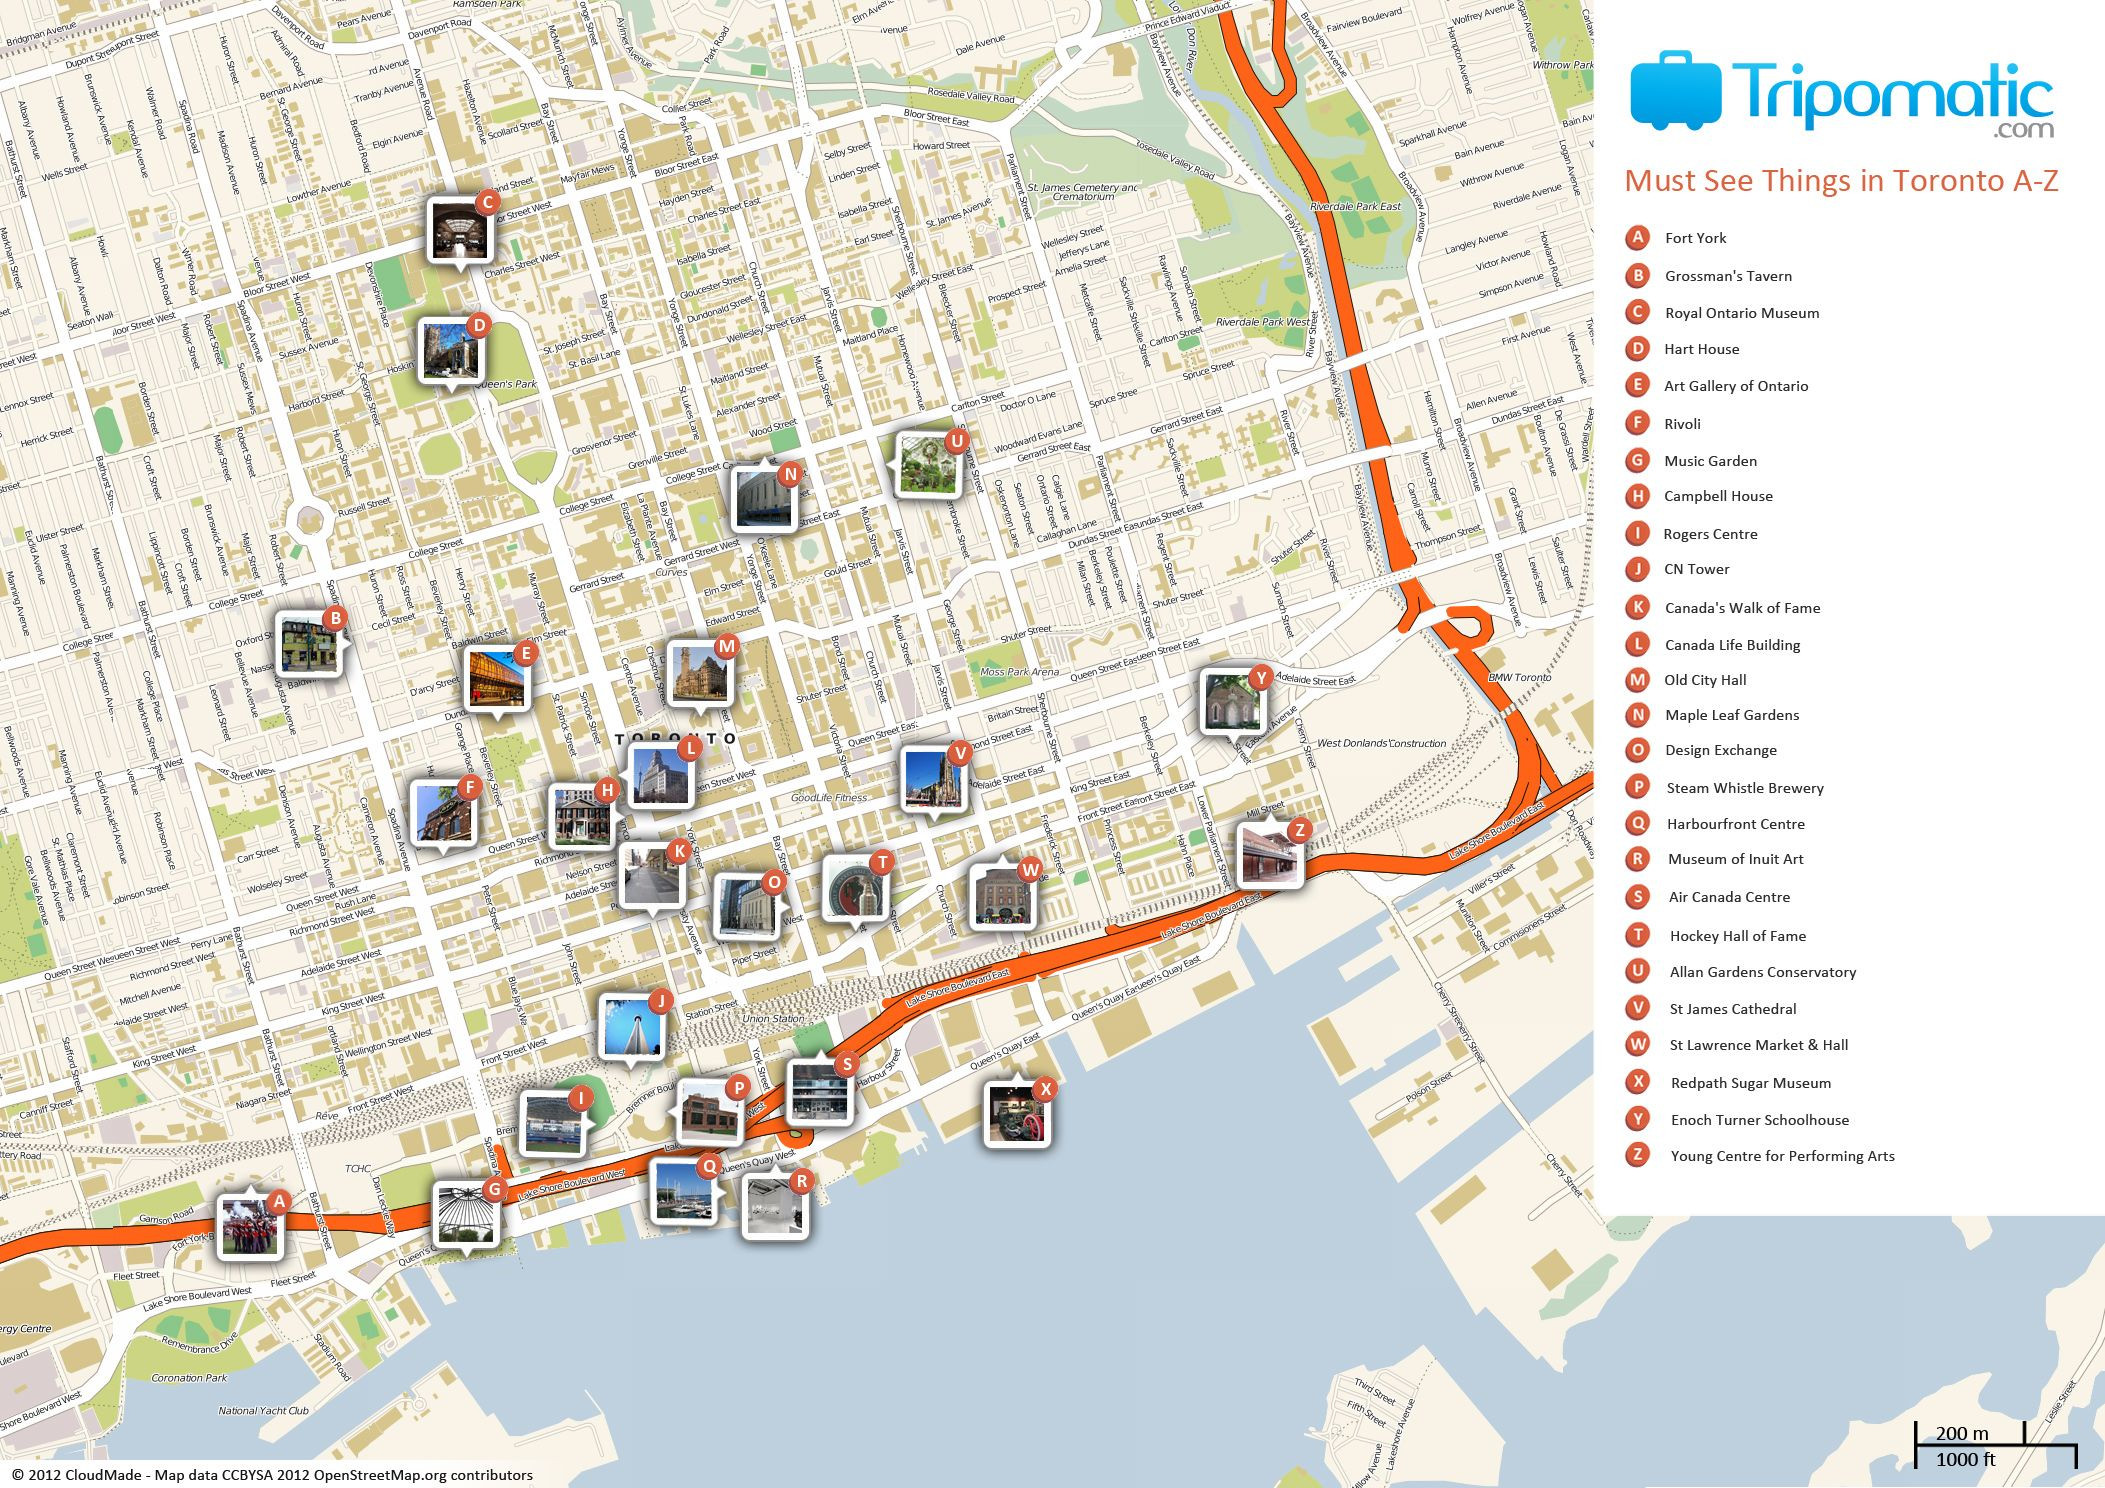 Printable Map New York Unique Toronto Printable Tourist Map Free Tourist Maps ✈